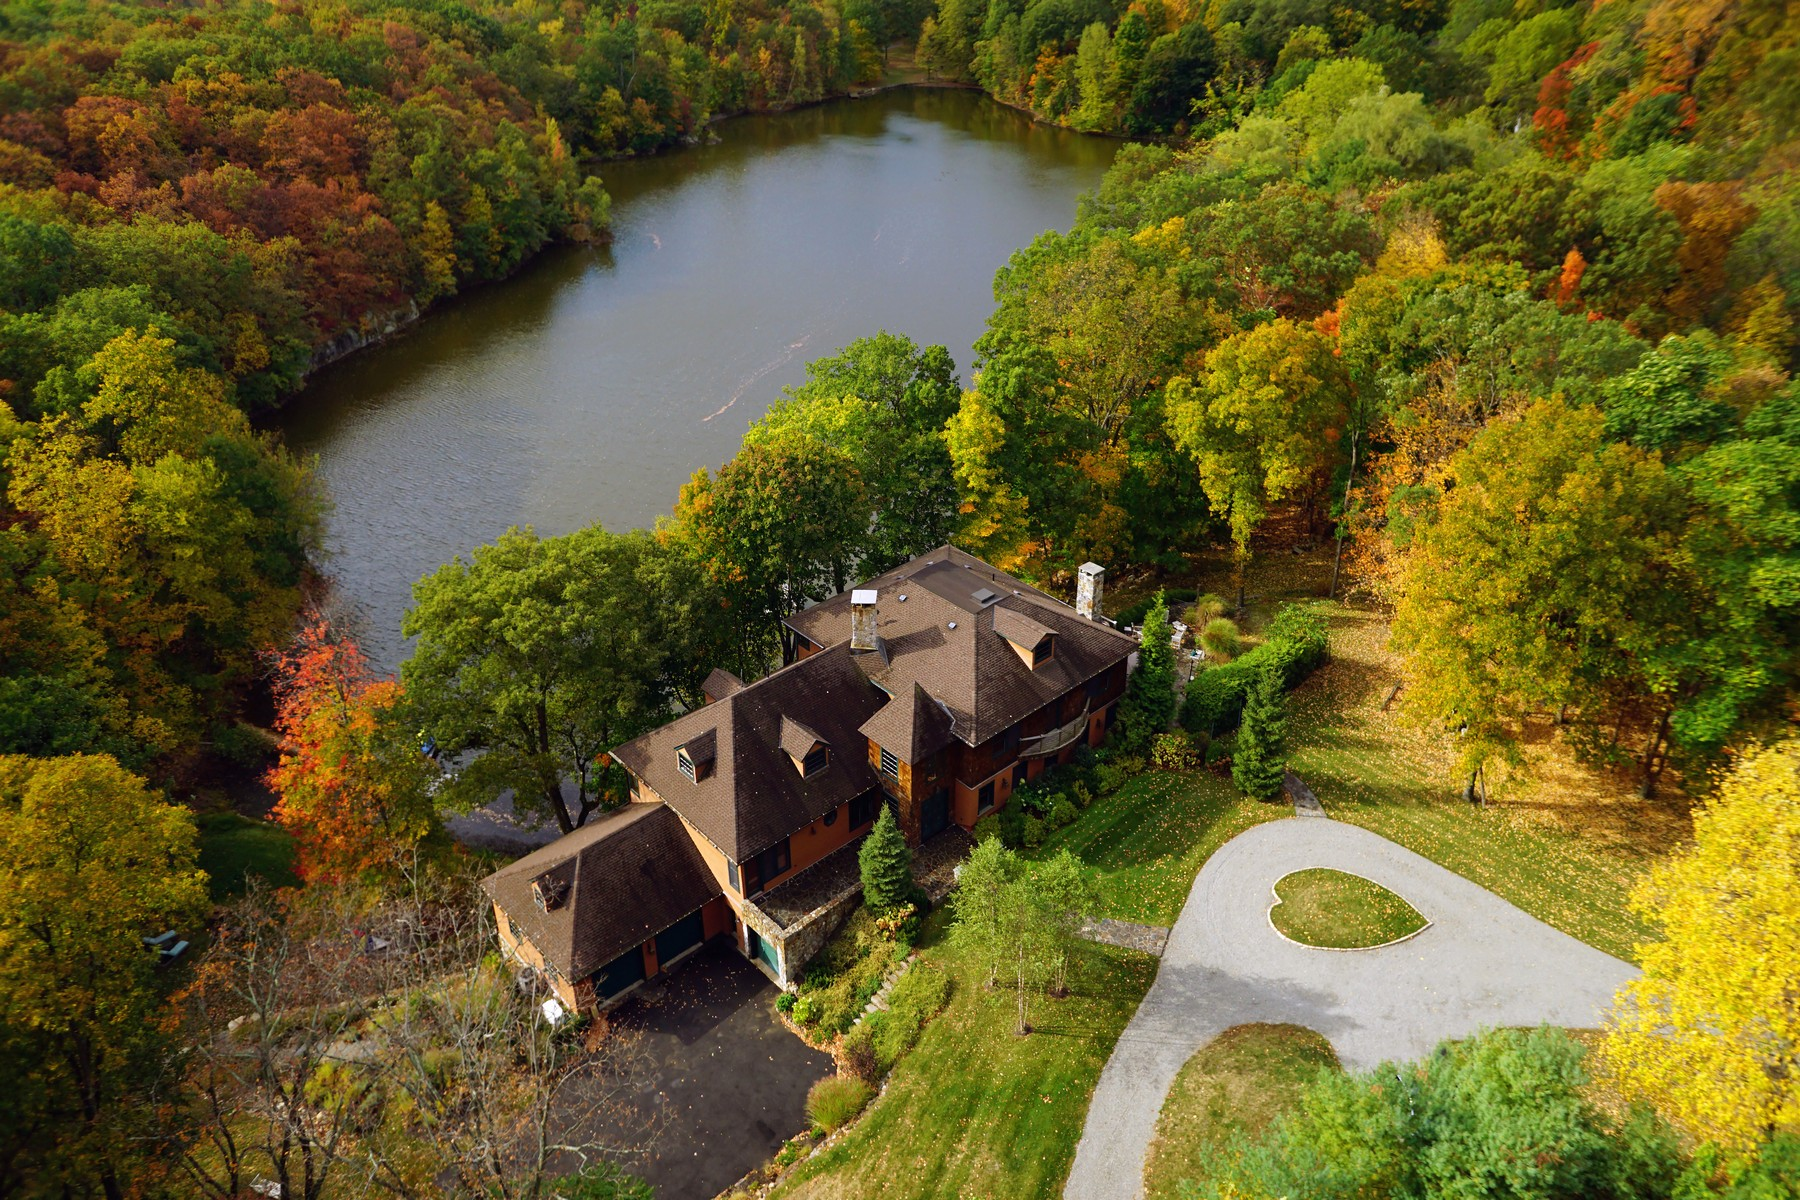 Single Family Home for Sale at Lane Gate Lodge 125 Lane Gate Road Cold Spring, New York 10516 United States